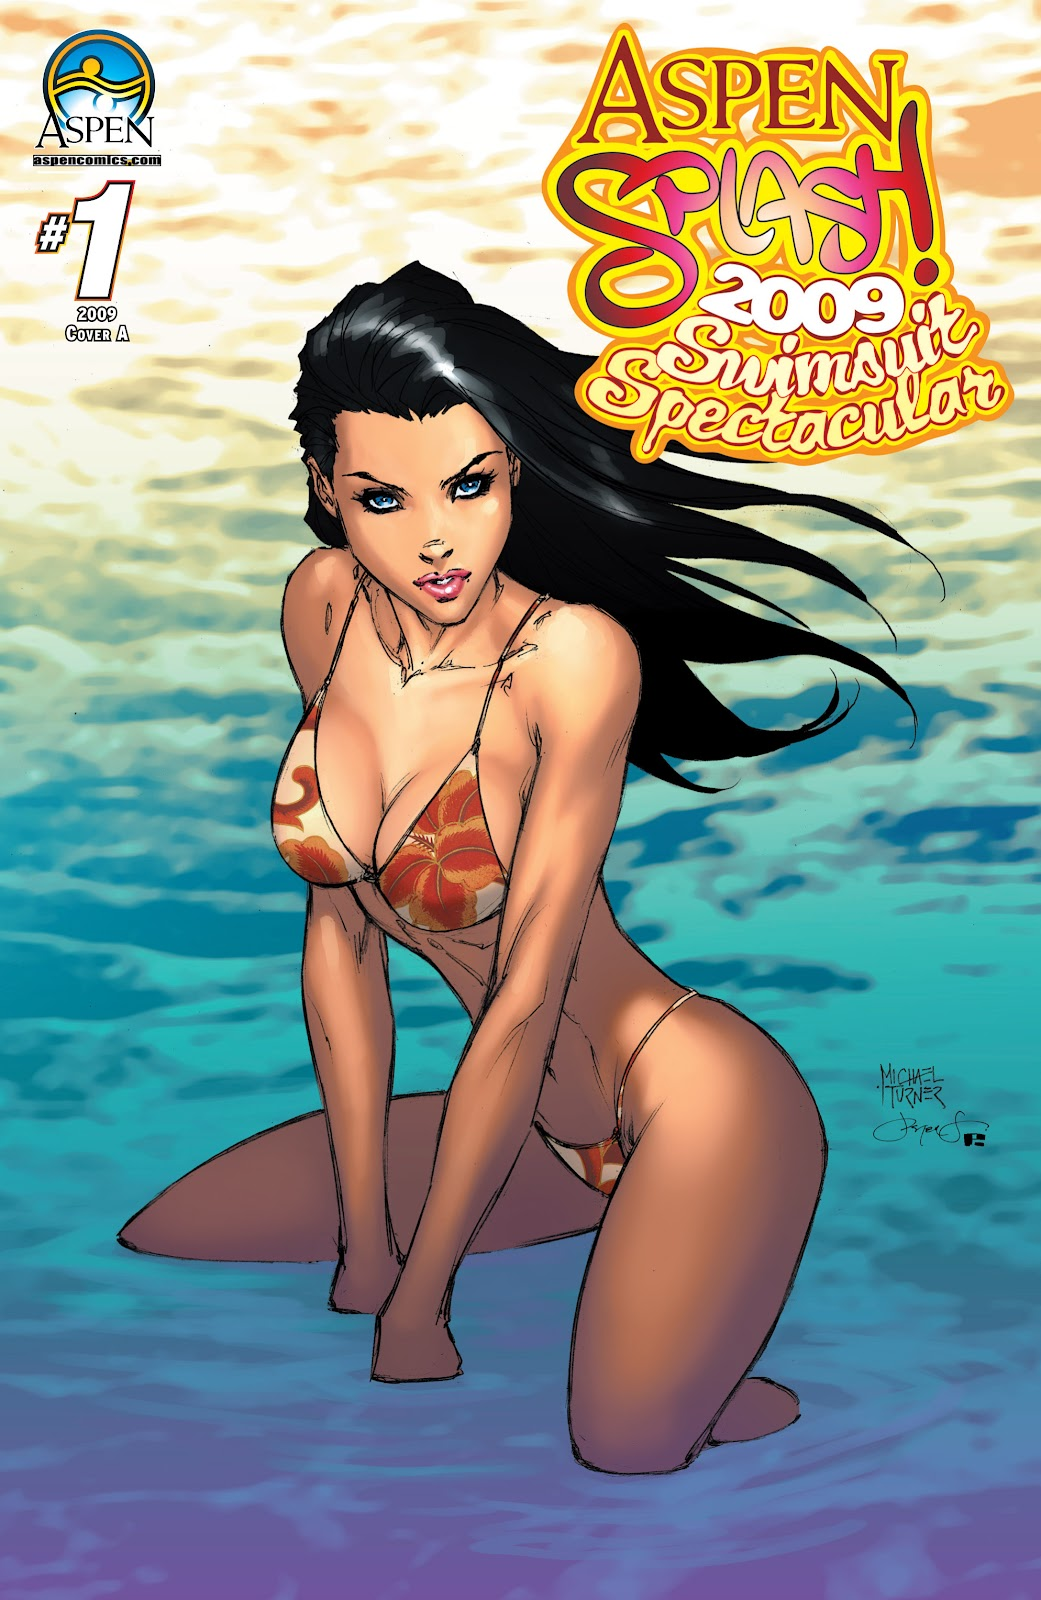 Read online Aspen Splash: Swimsuit Spectacular comic -  Issue # Issue 2009 - 1